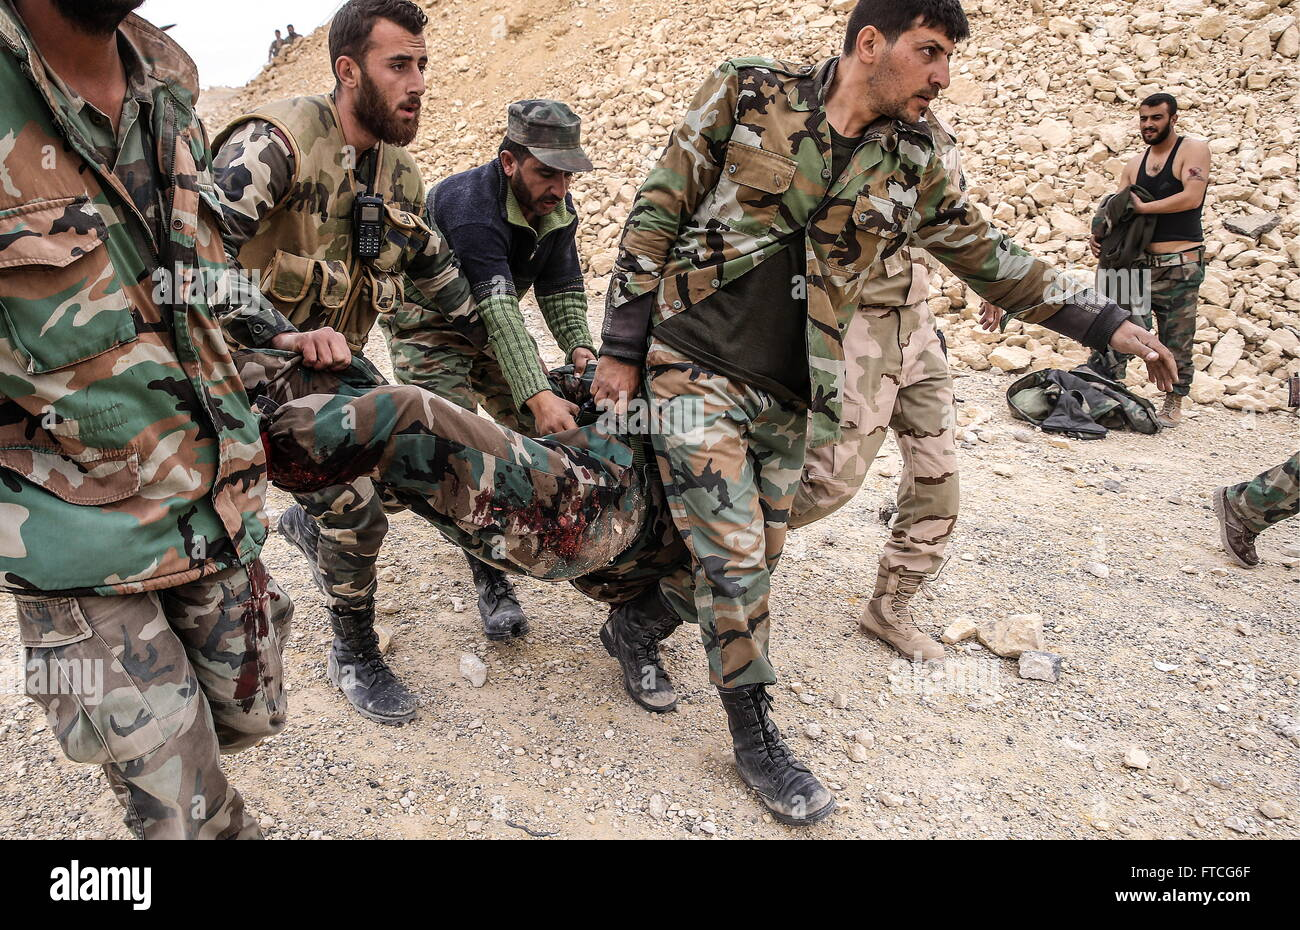 Palmyria, Syria. 26th Mar, 2016. Syrian government army soldiers carry their fellow soldier who was injured in an - Stock Image